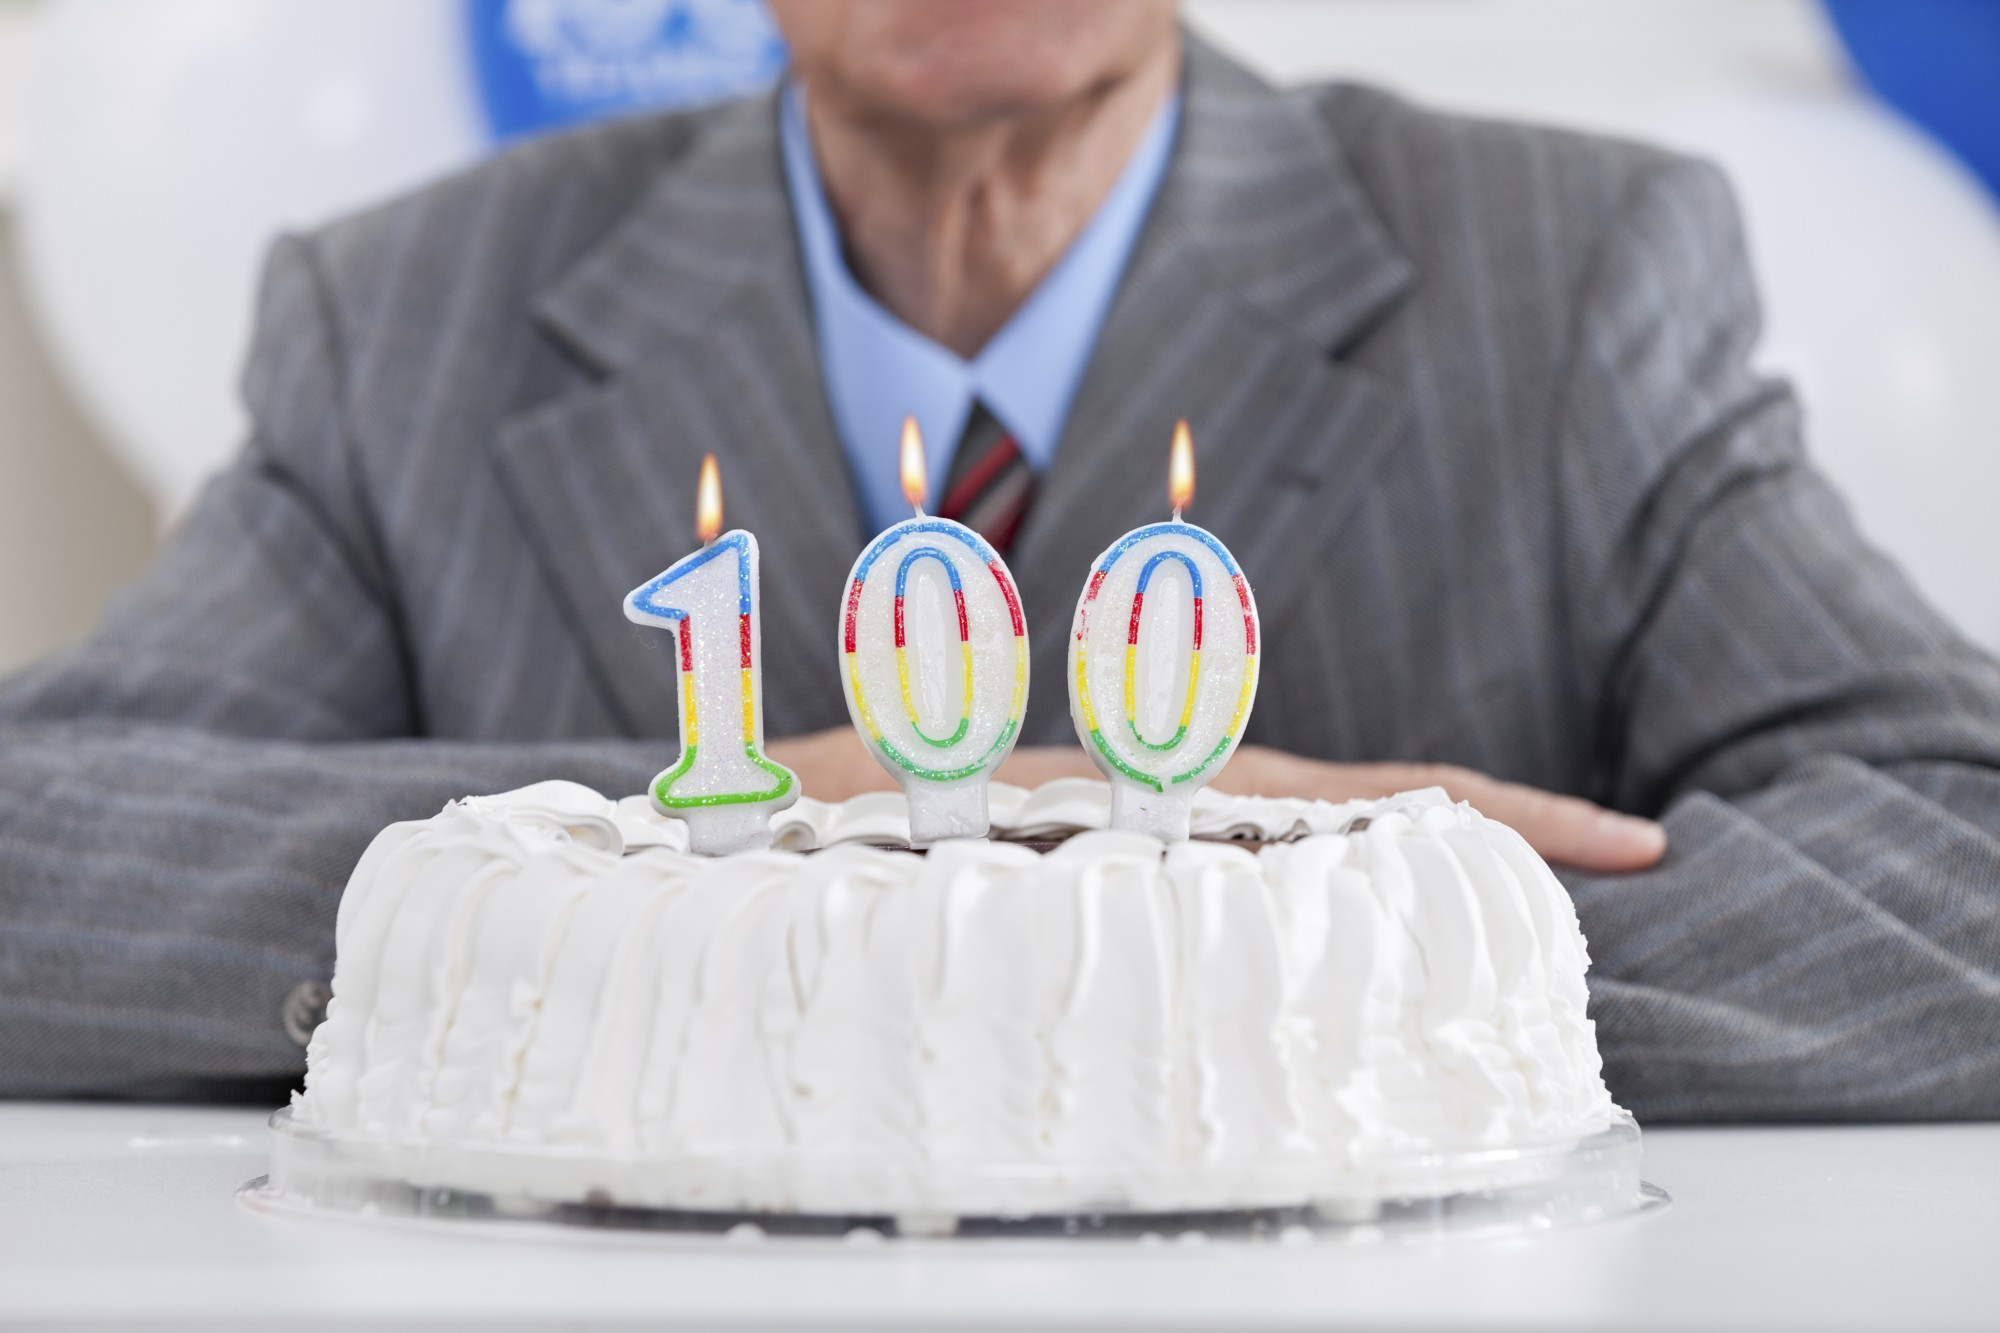 Four ways to live 10 years longer